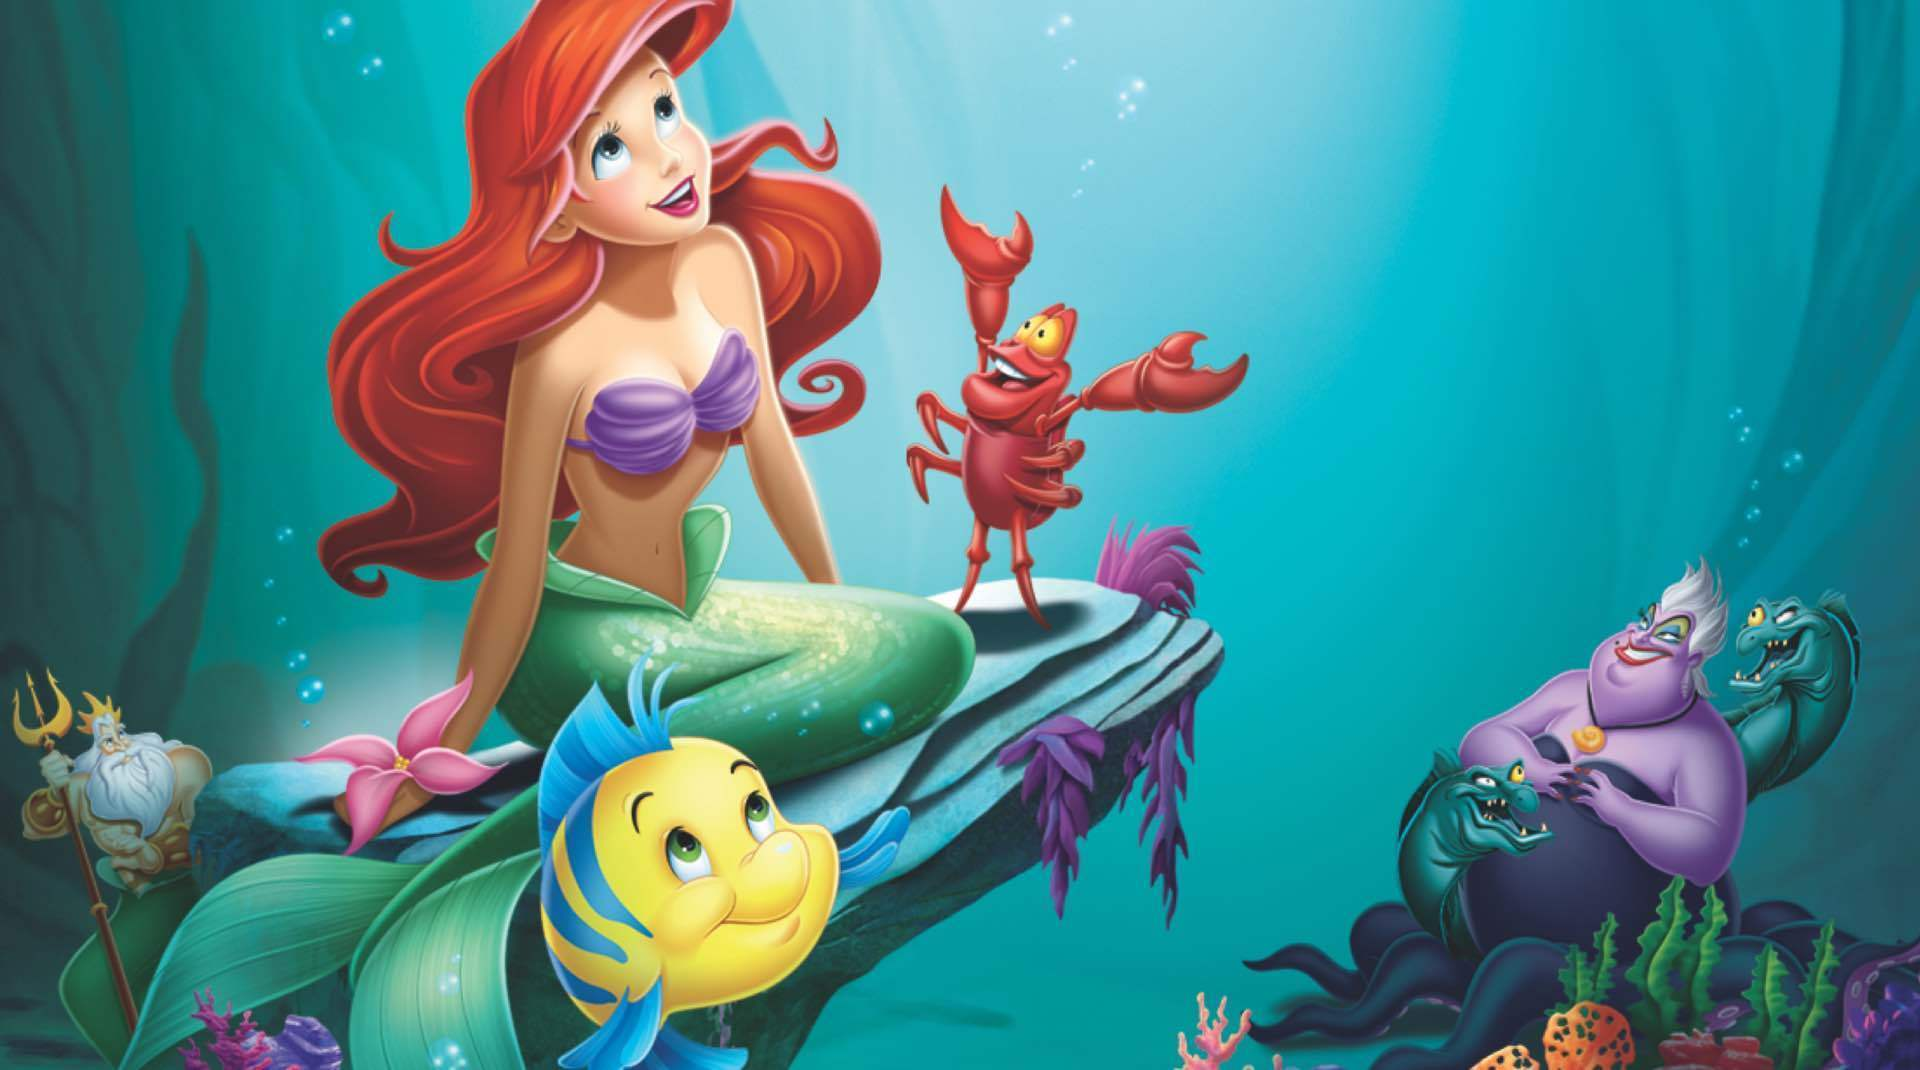 A still image from the Little Mermaid